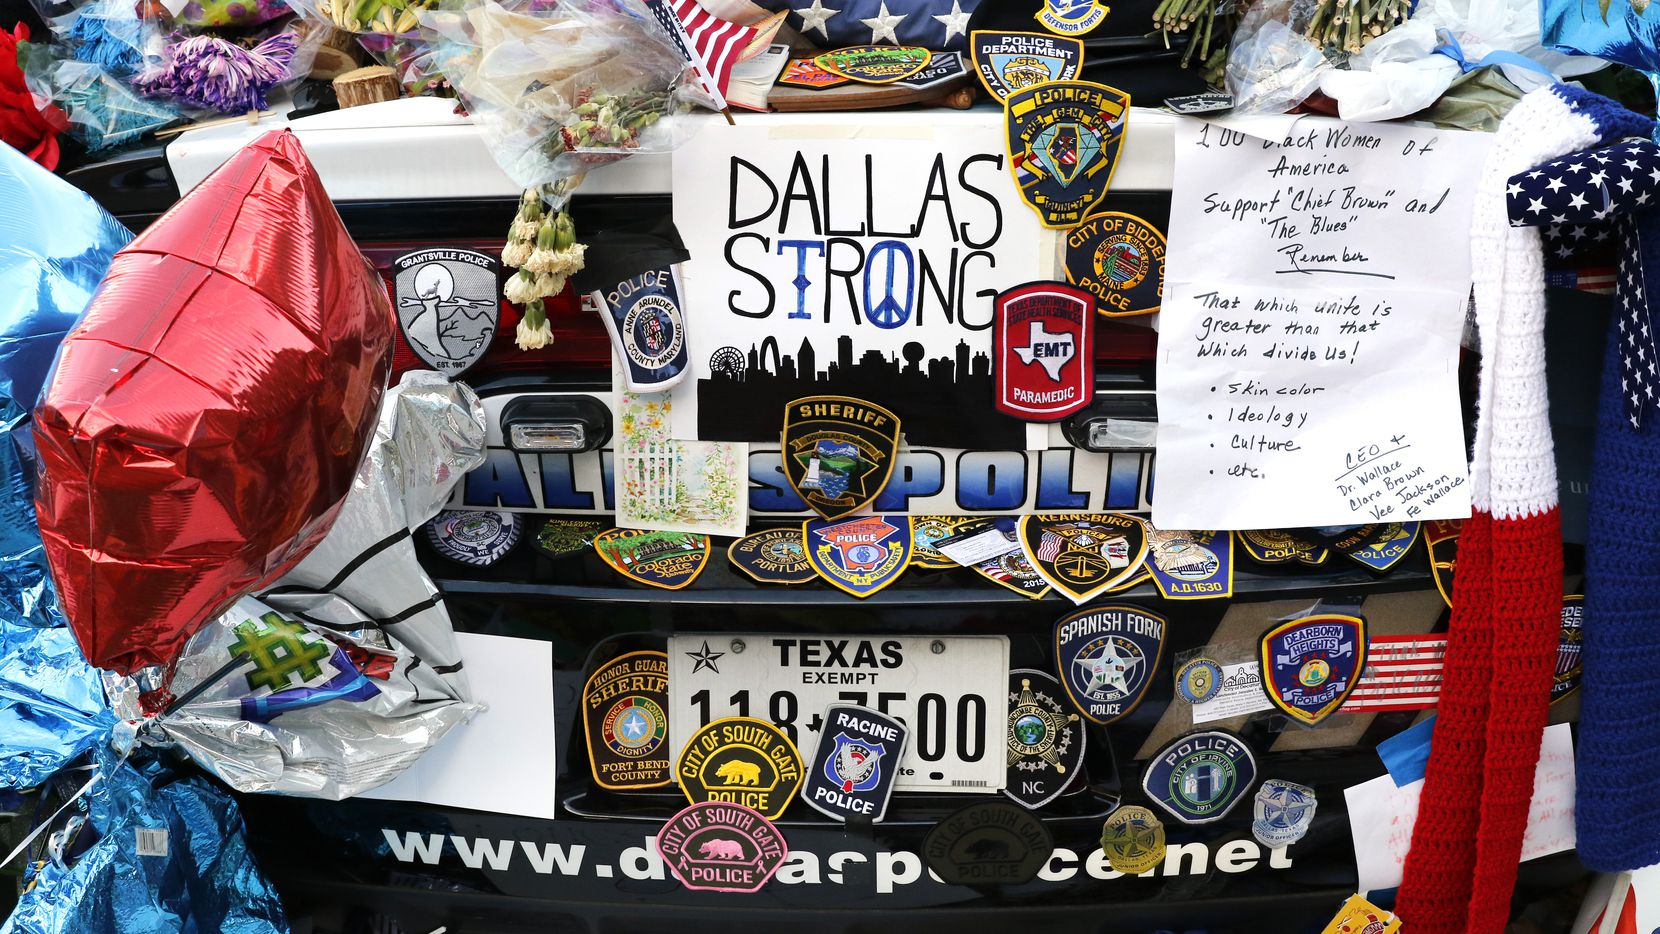 Two Dallas police patrol cars were covered with notes, flowers, balloons and other items as part of a makeshift memorial at the Jack Evans Police Headquarters on July 14. Patches from police departments from across the country are part of the memorial. Five police officers were killed and many others injured in an ambush on July 7 during a march against recent police involved shootings.